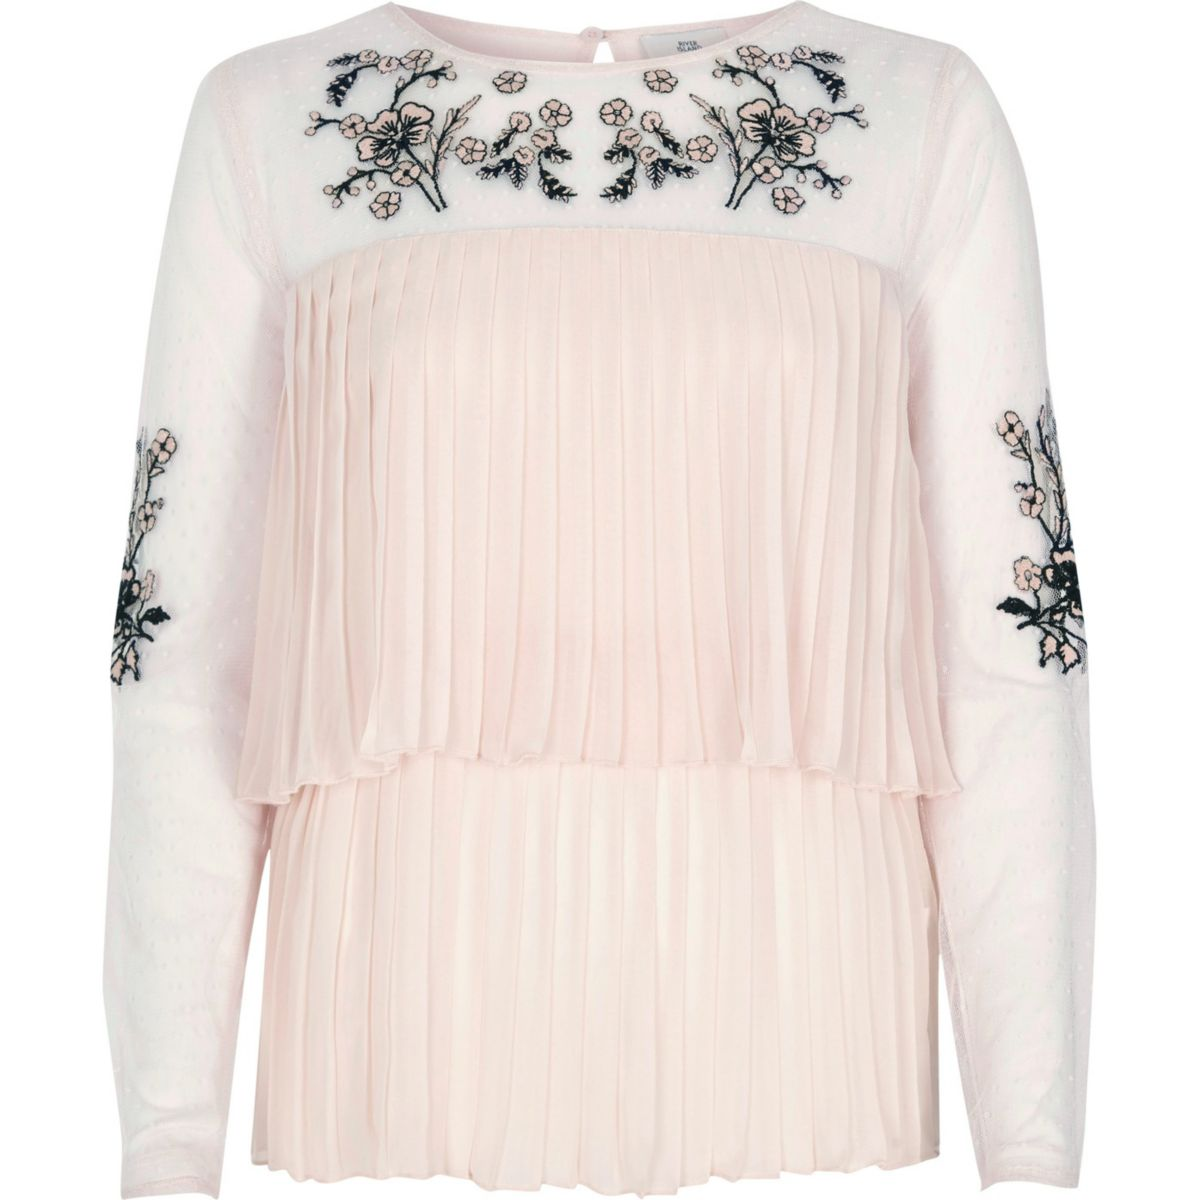 Cream pleated floral embroidered top